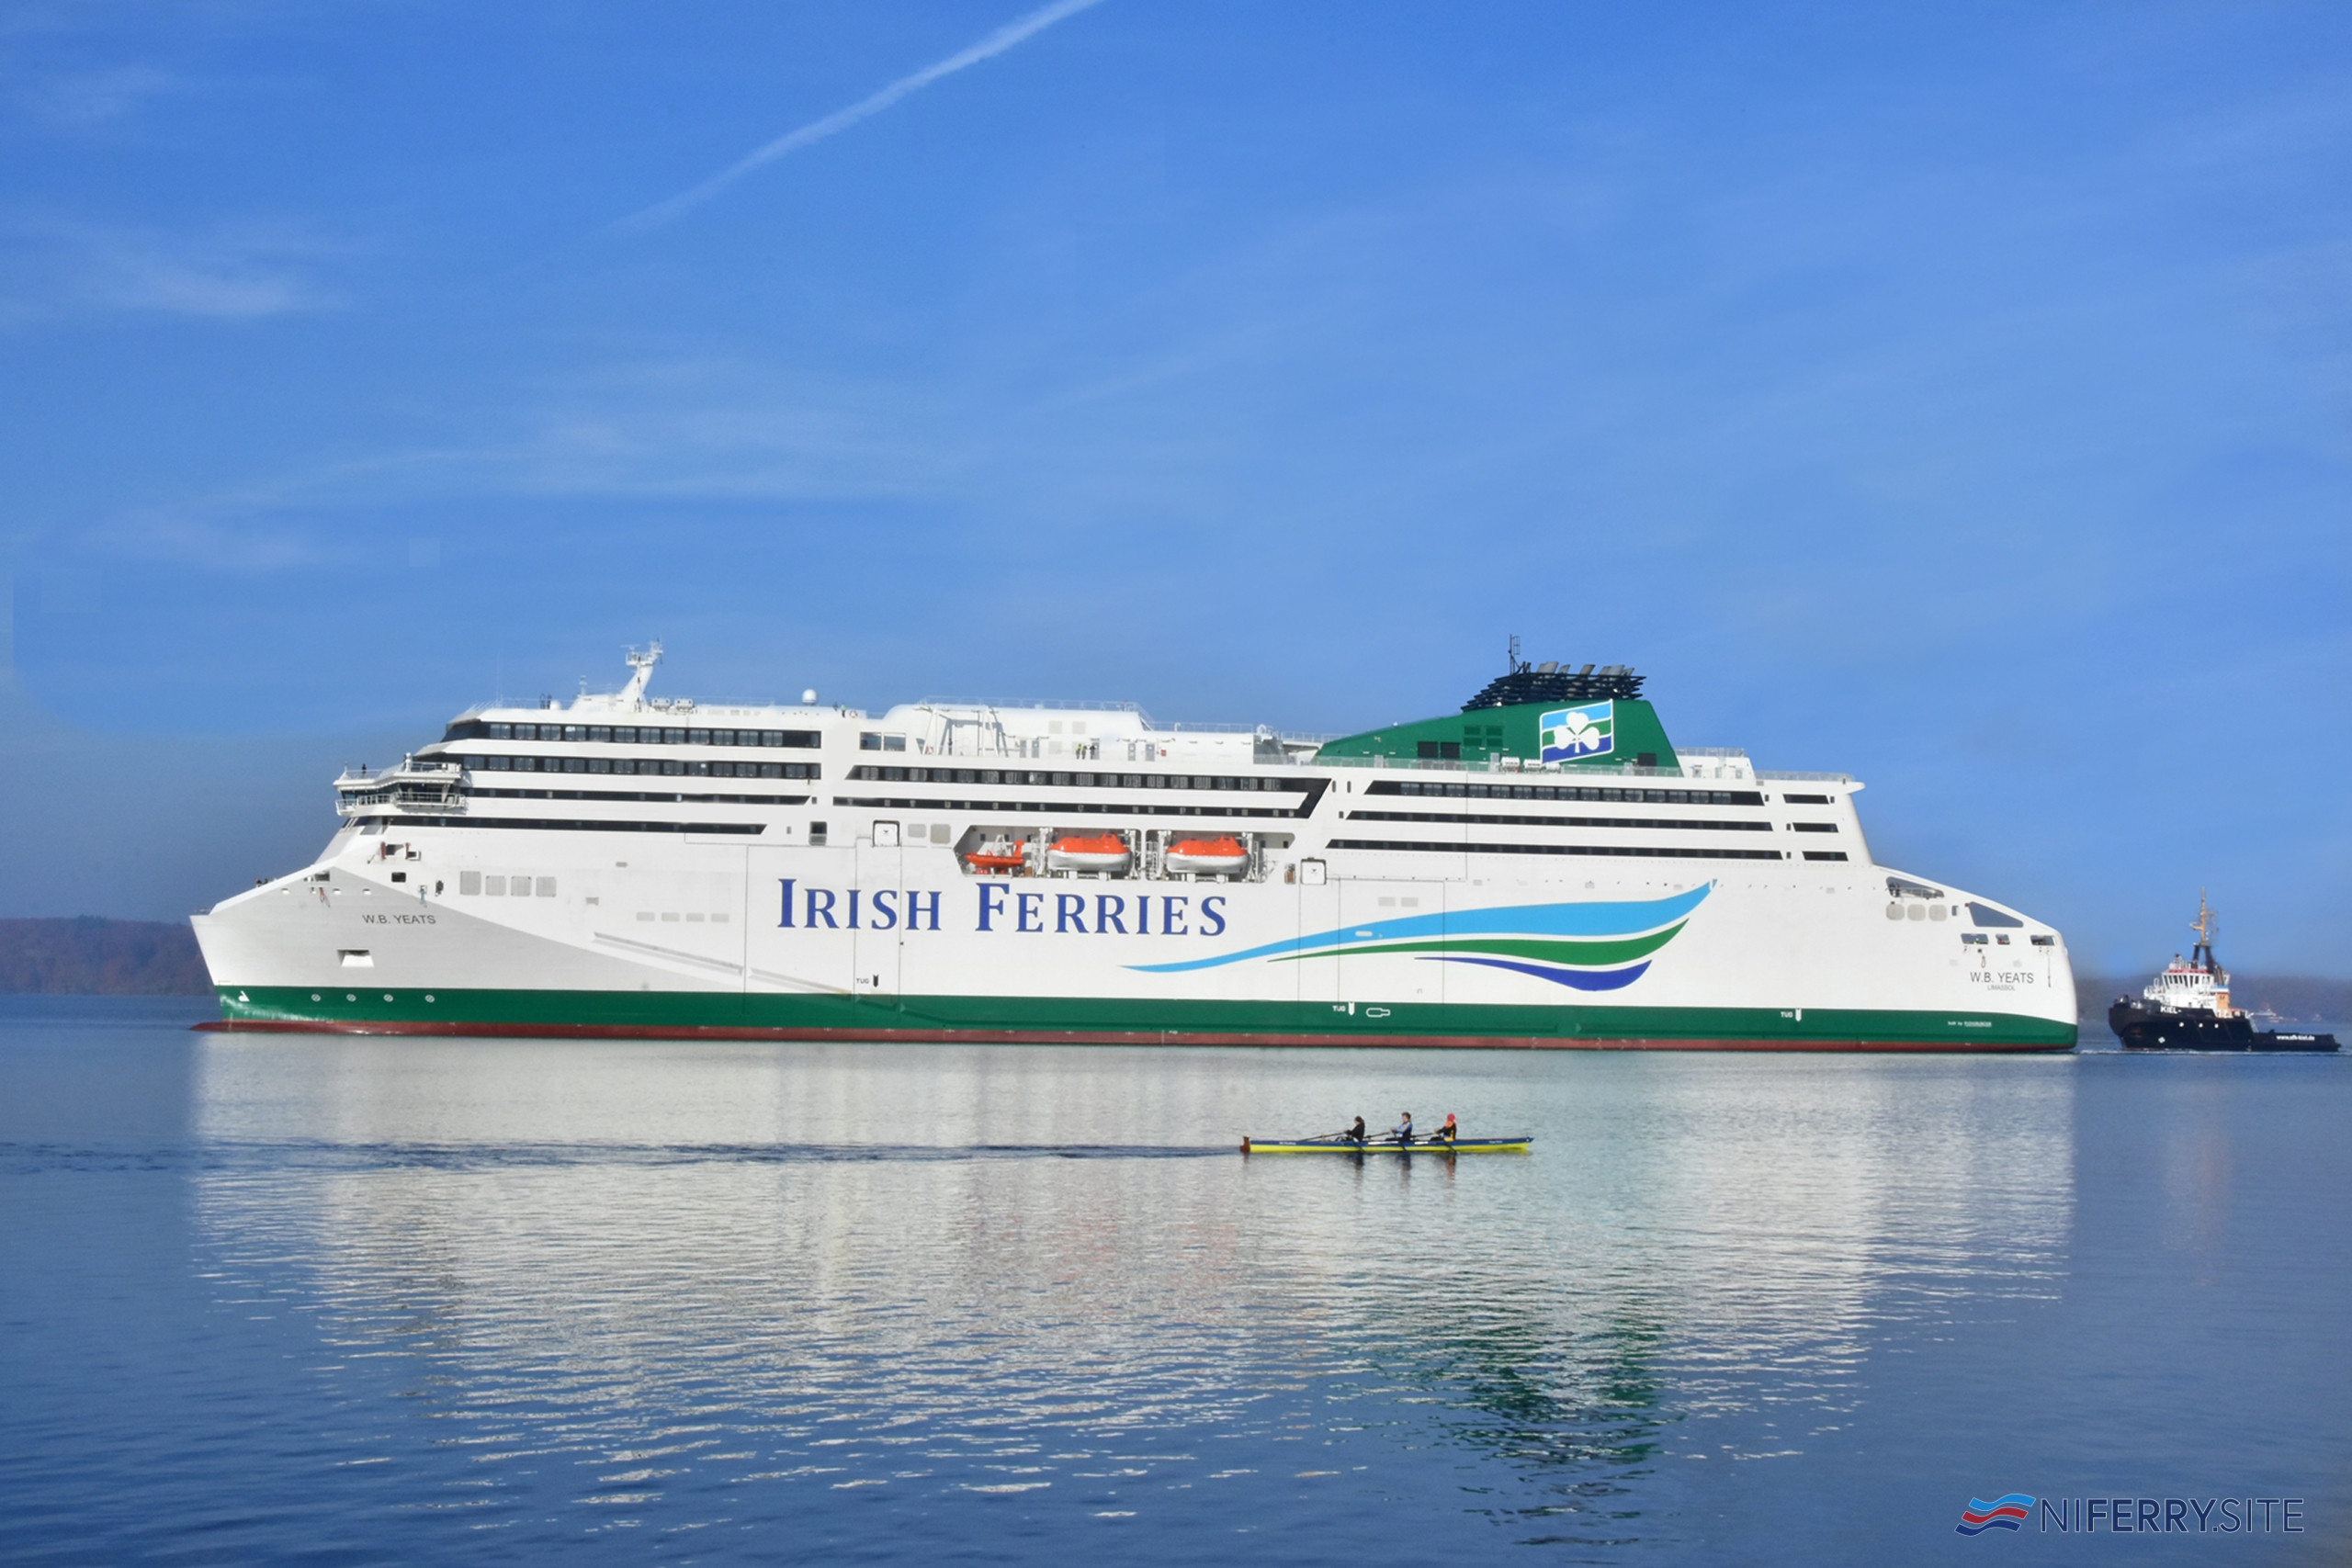 Irish Ferries' W. B. YEATS. Irish Ferries.